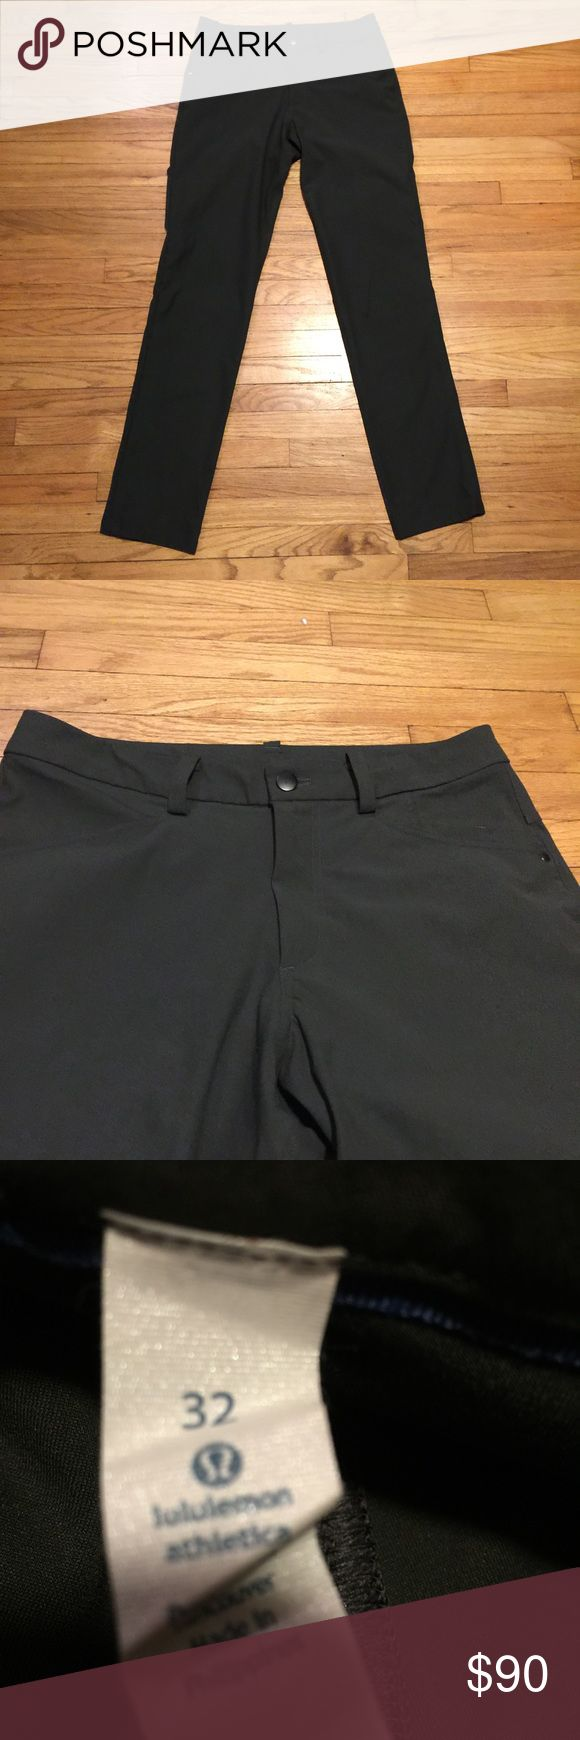 Lululemon gray ABC pants - 32x33 Lululemon gray ABC pants - 32x33. Waist - 15.5 inches. Rise - 11 inches. Inseam - 33 inches. Excellent condition lululemon athletica Pants